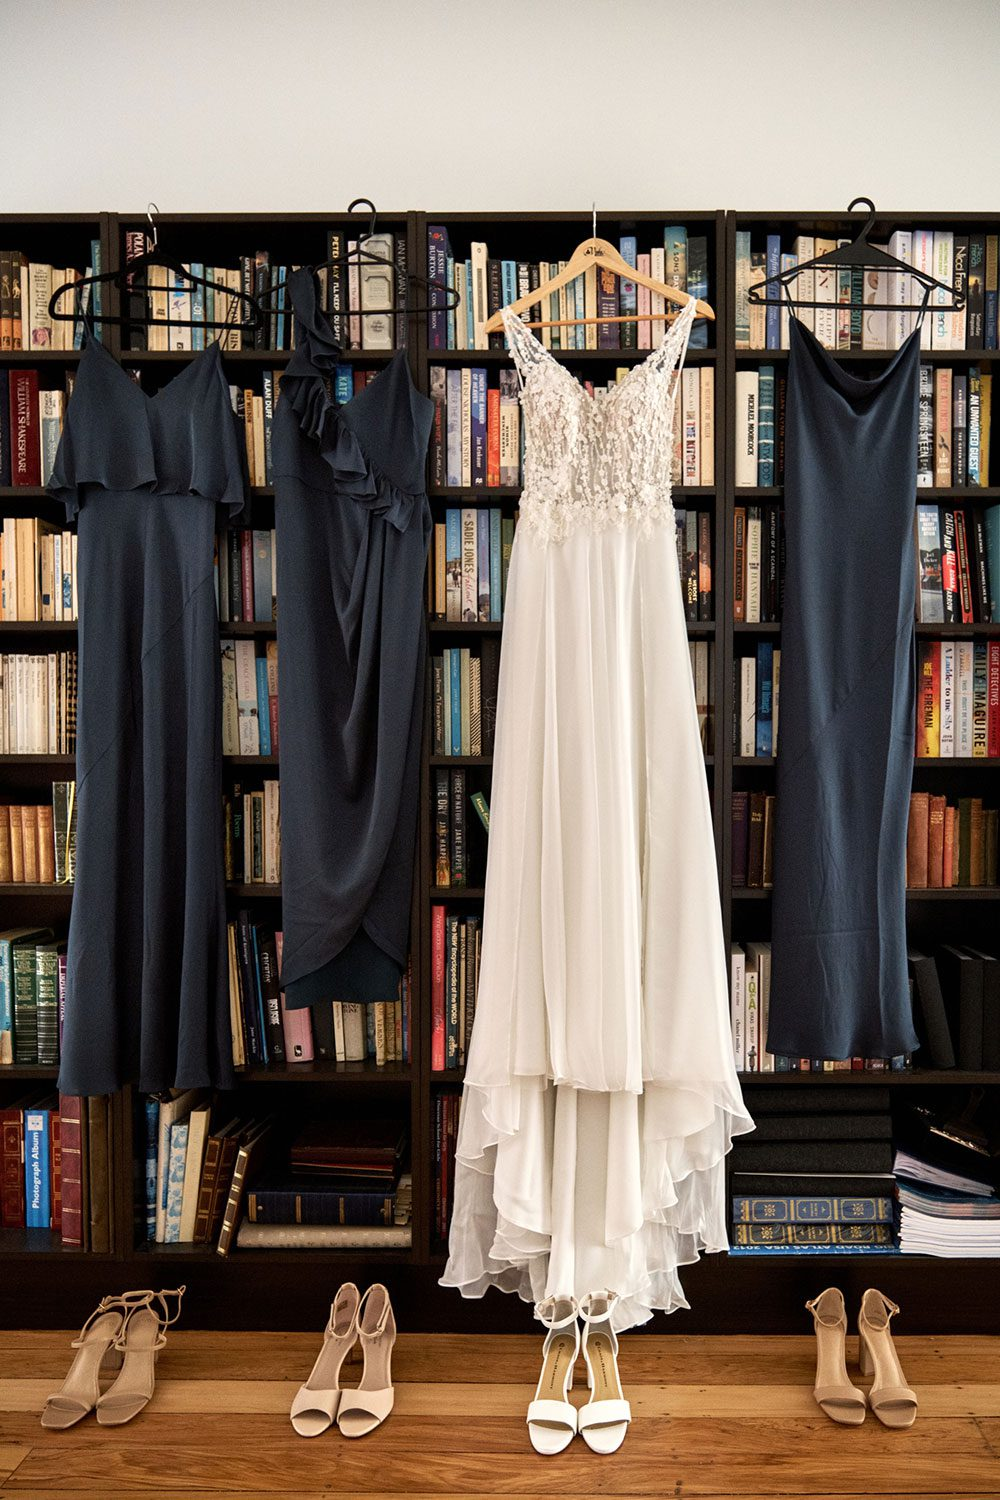 Bespoke gown made of silk chiffon with delicate flower lace bodice by Vinka bridal designer Auckland - bride and bridesmaid dresses and shoes